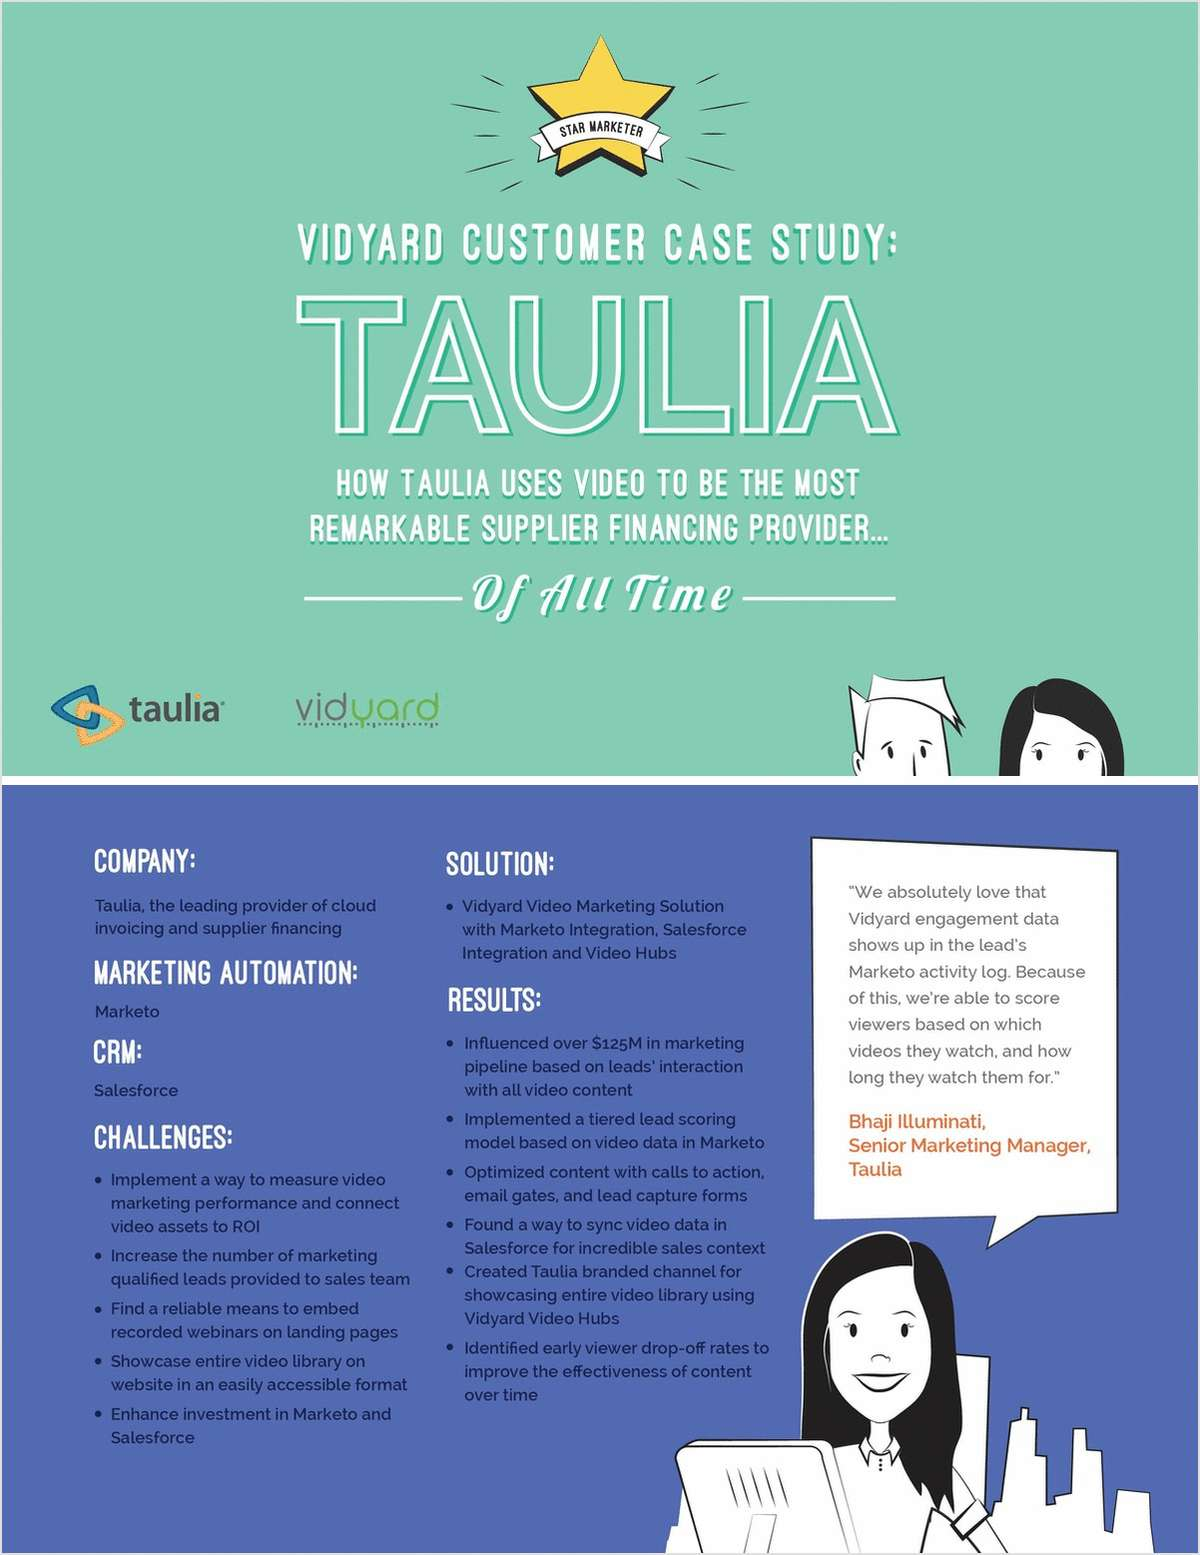 Taulia: A Video Marketing Success Story